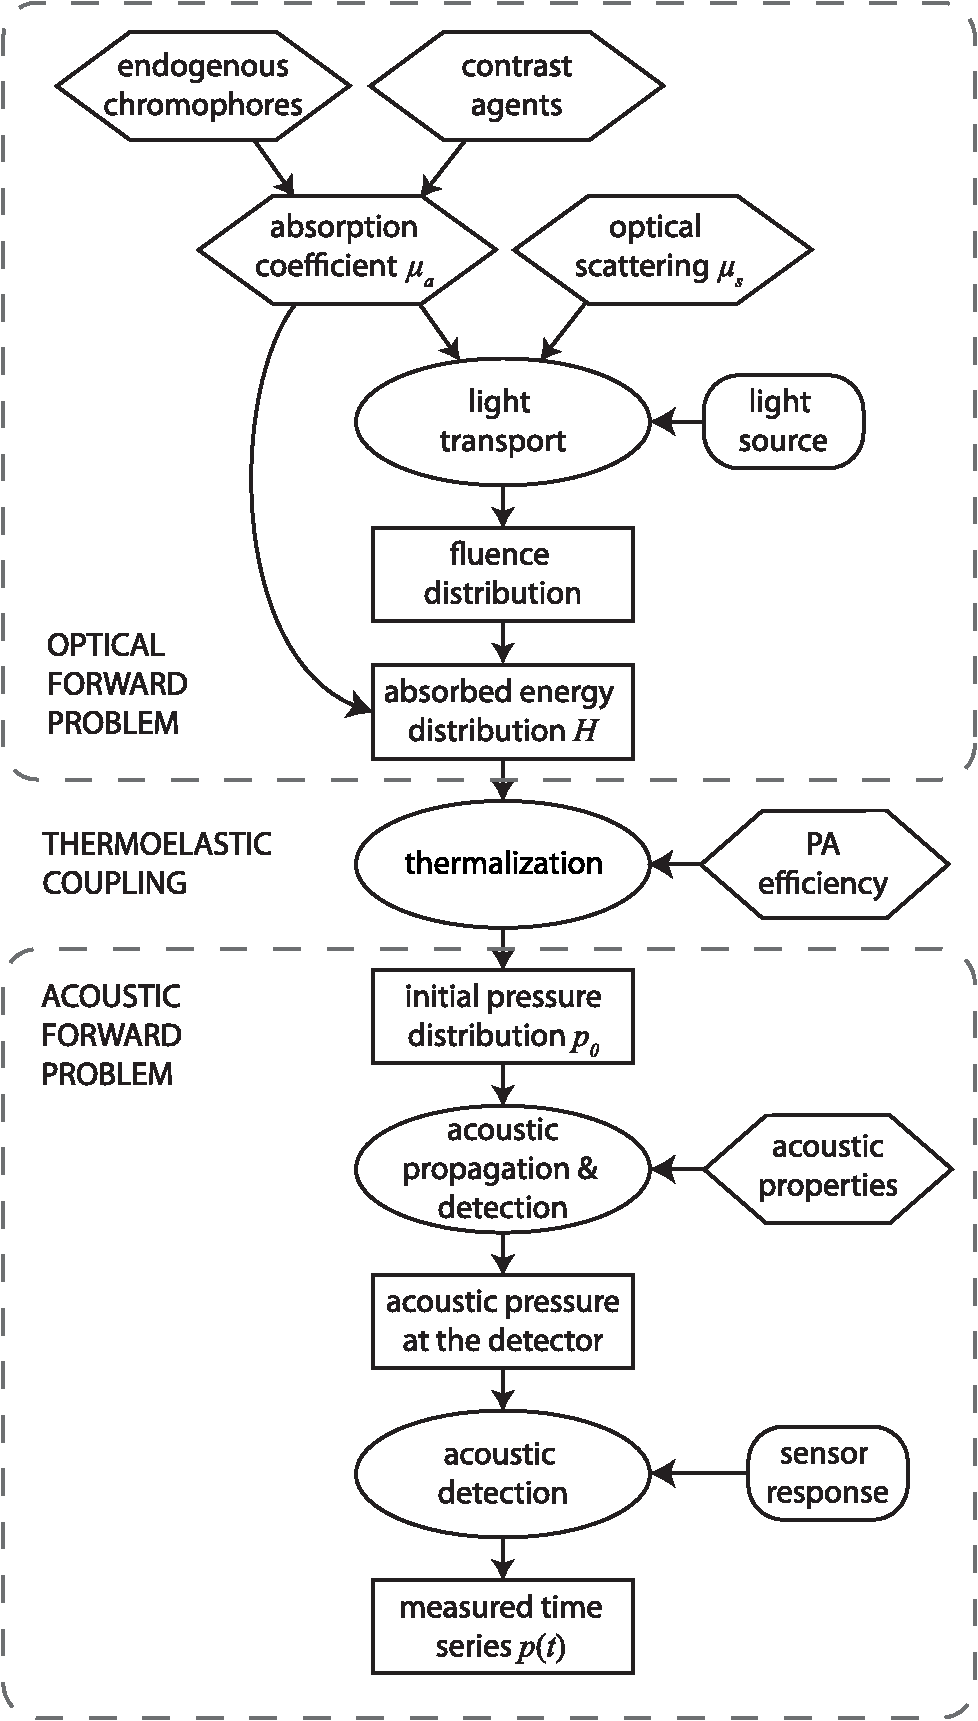 Quantitative Spectroscopic Photoacoustic Imaging A Review Lm 317 T Related Keywords Suggestions Long Tail The Resulting Pulse Is Detected By Sensor In Measured Pa Time Series Pt P